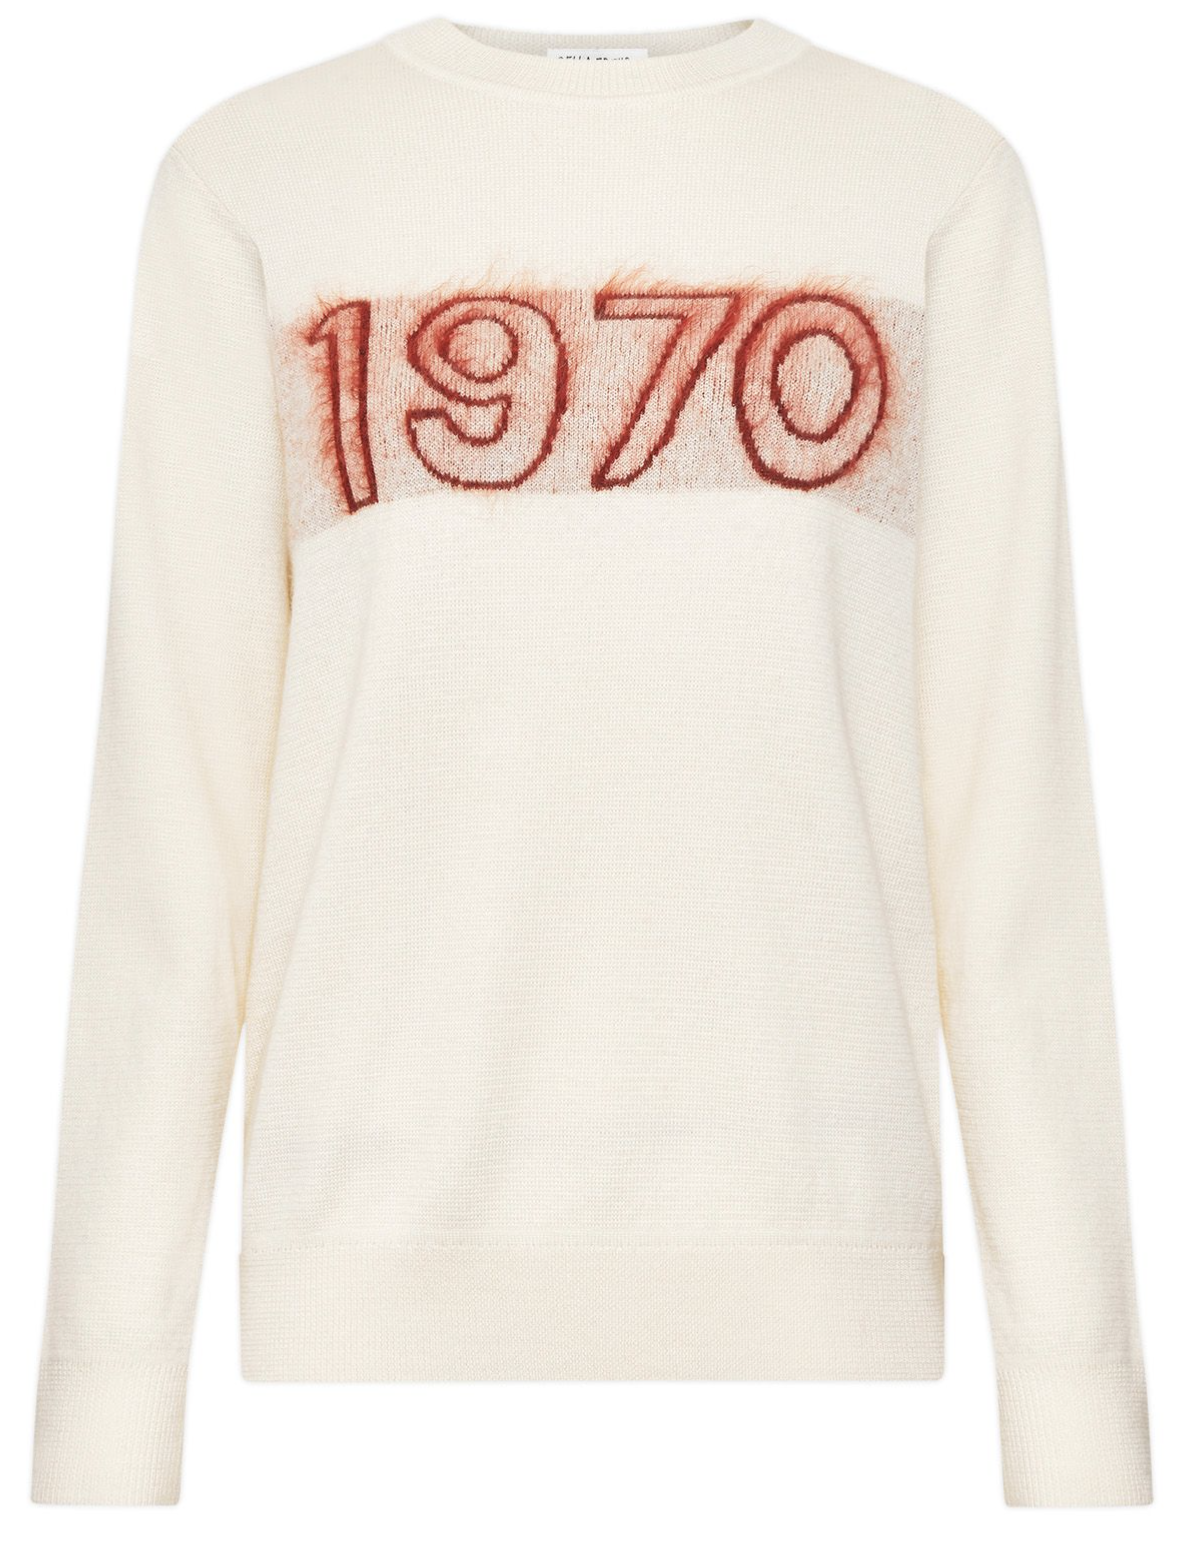 bella-freud-jumper-hot-list-must-haves-to-buy-this-month